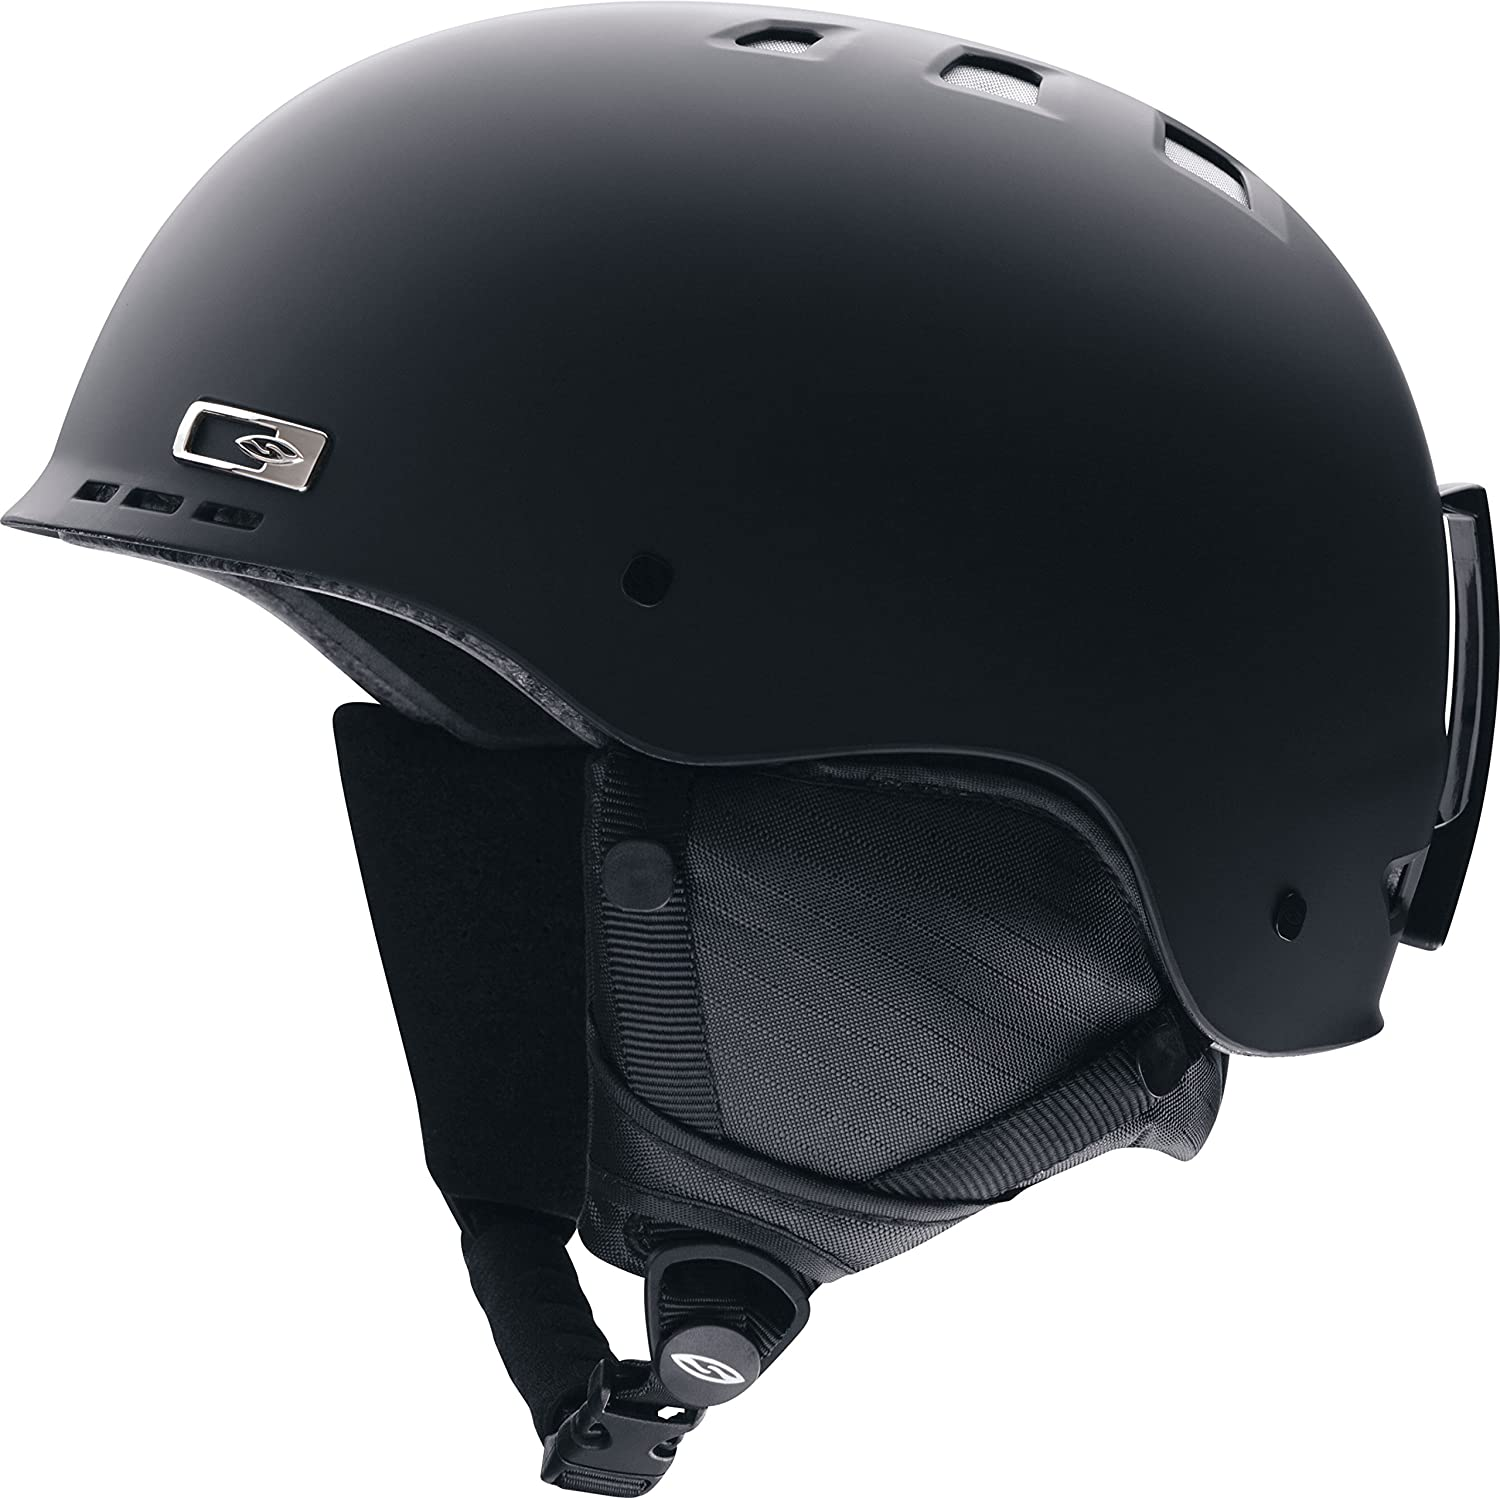 Top 10 Best Snowboard Helmet (2020 Reviews & Buying Guide) 2